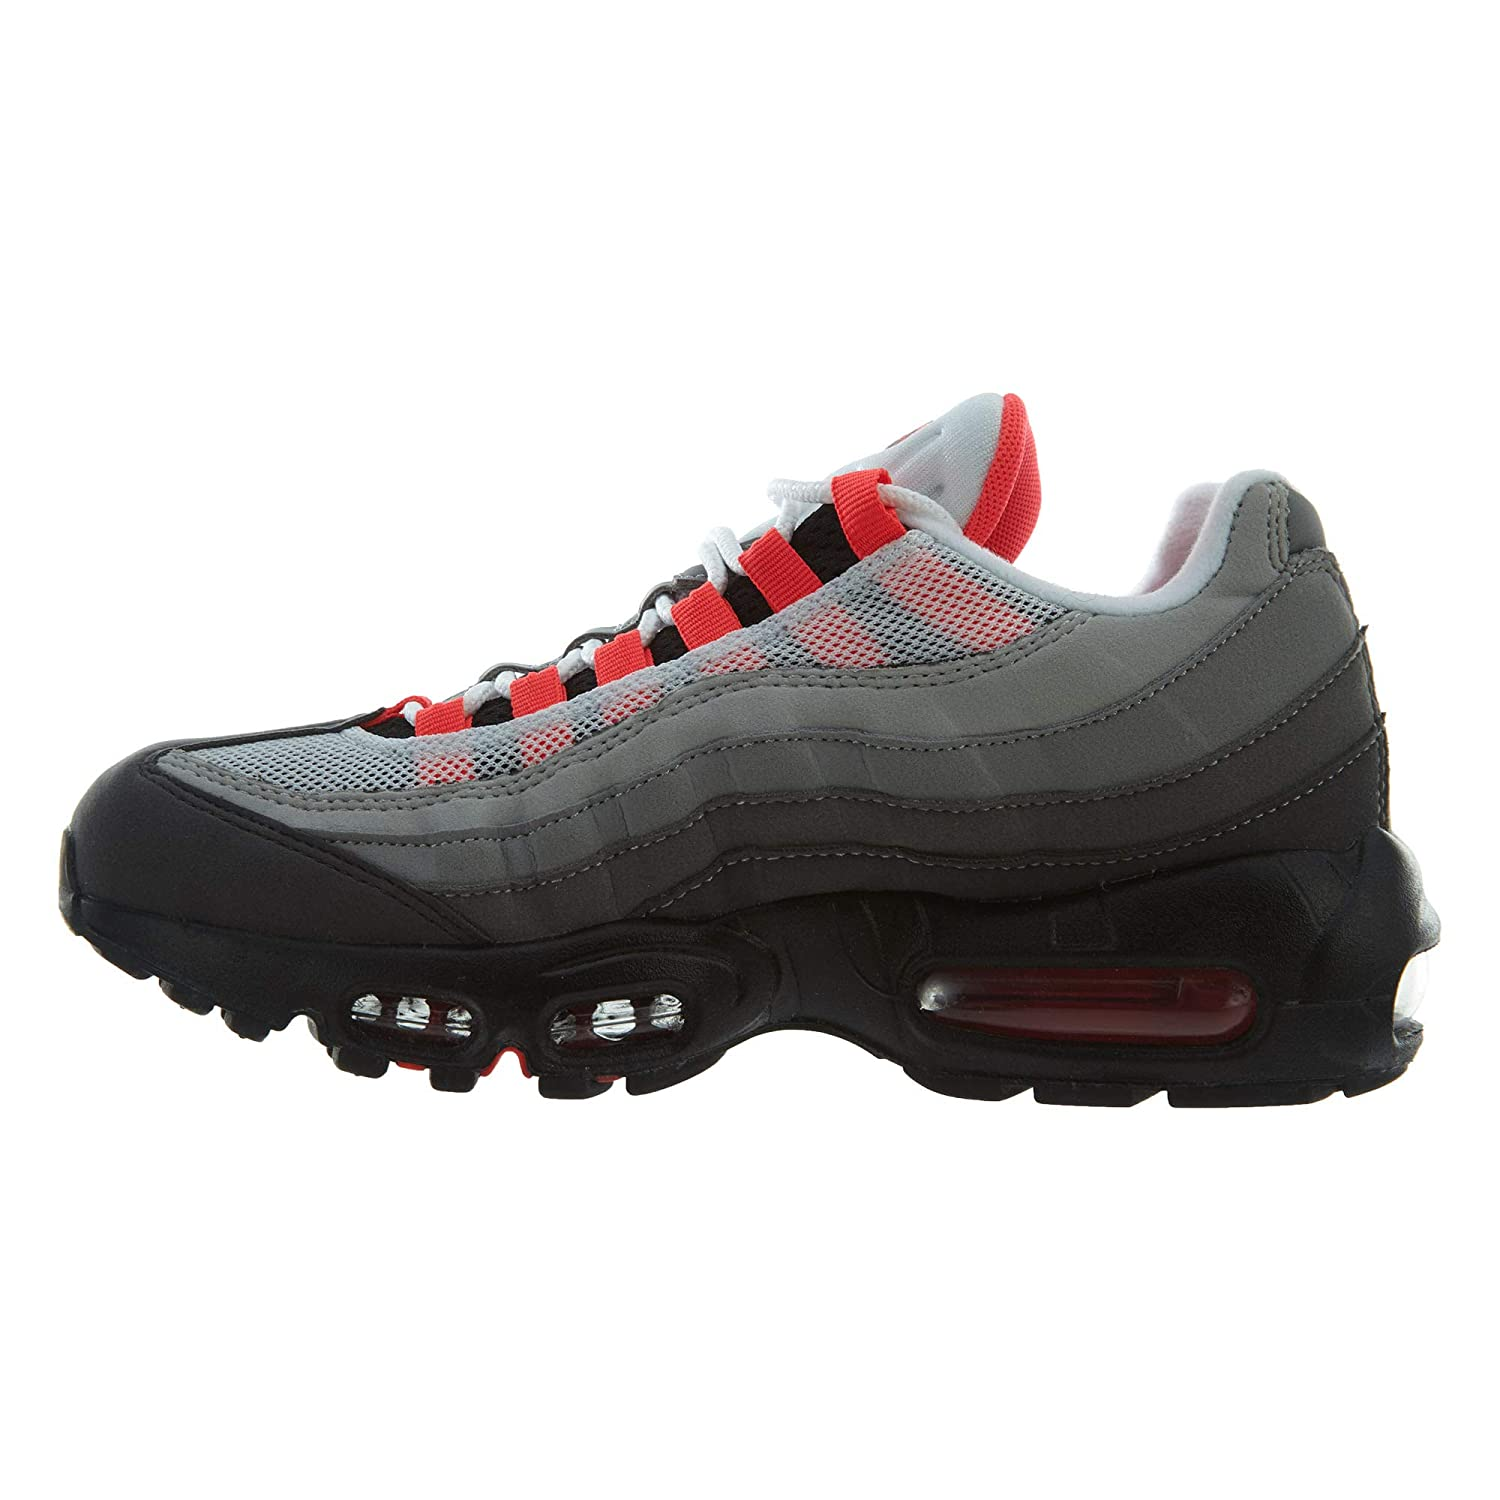 9be885d3ee2 Amazon.com  Nike Air Max 95 Men s Shoe   NIKE  Shoes